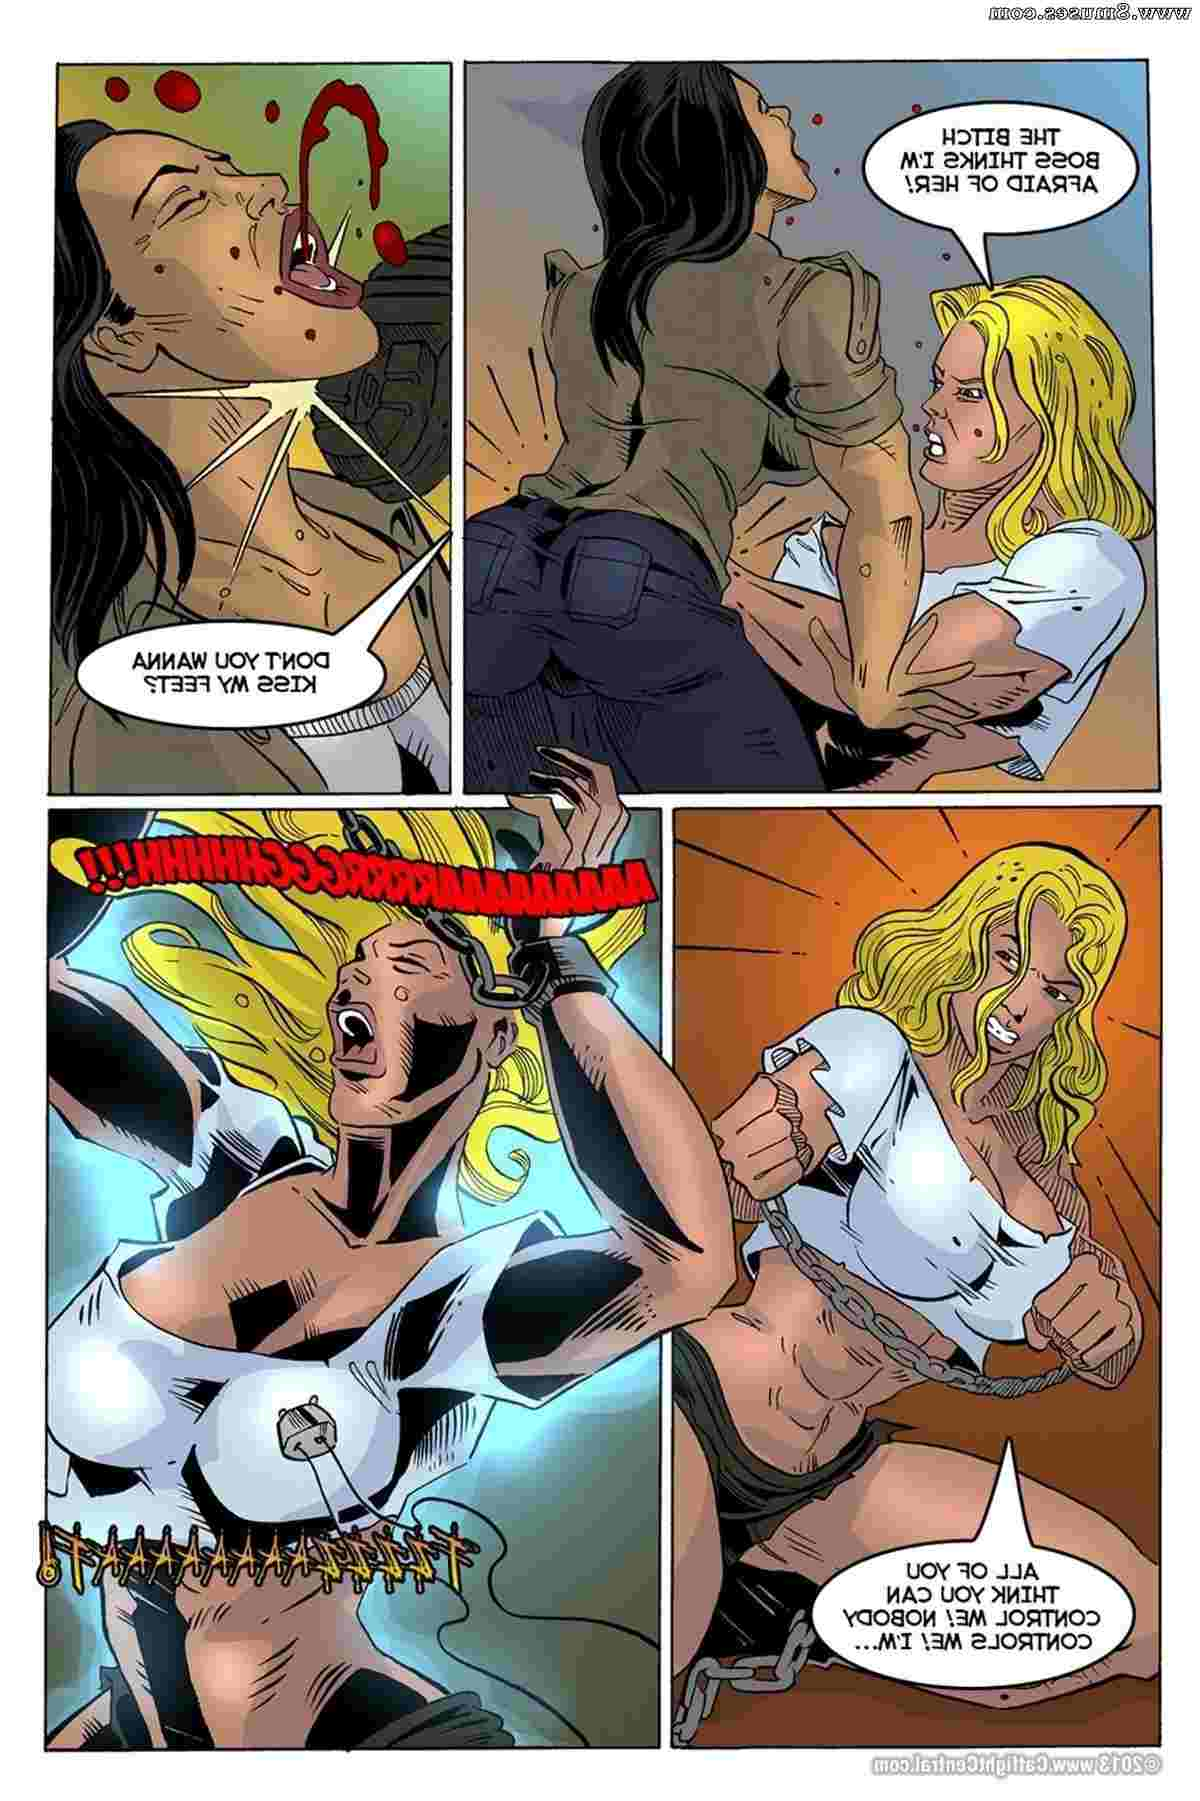 Central-Comics/Catfight-Central/Prison-Bitches Prison_Bitches__8muses_-_Sex_and_Porn_Comics_59.jpg